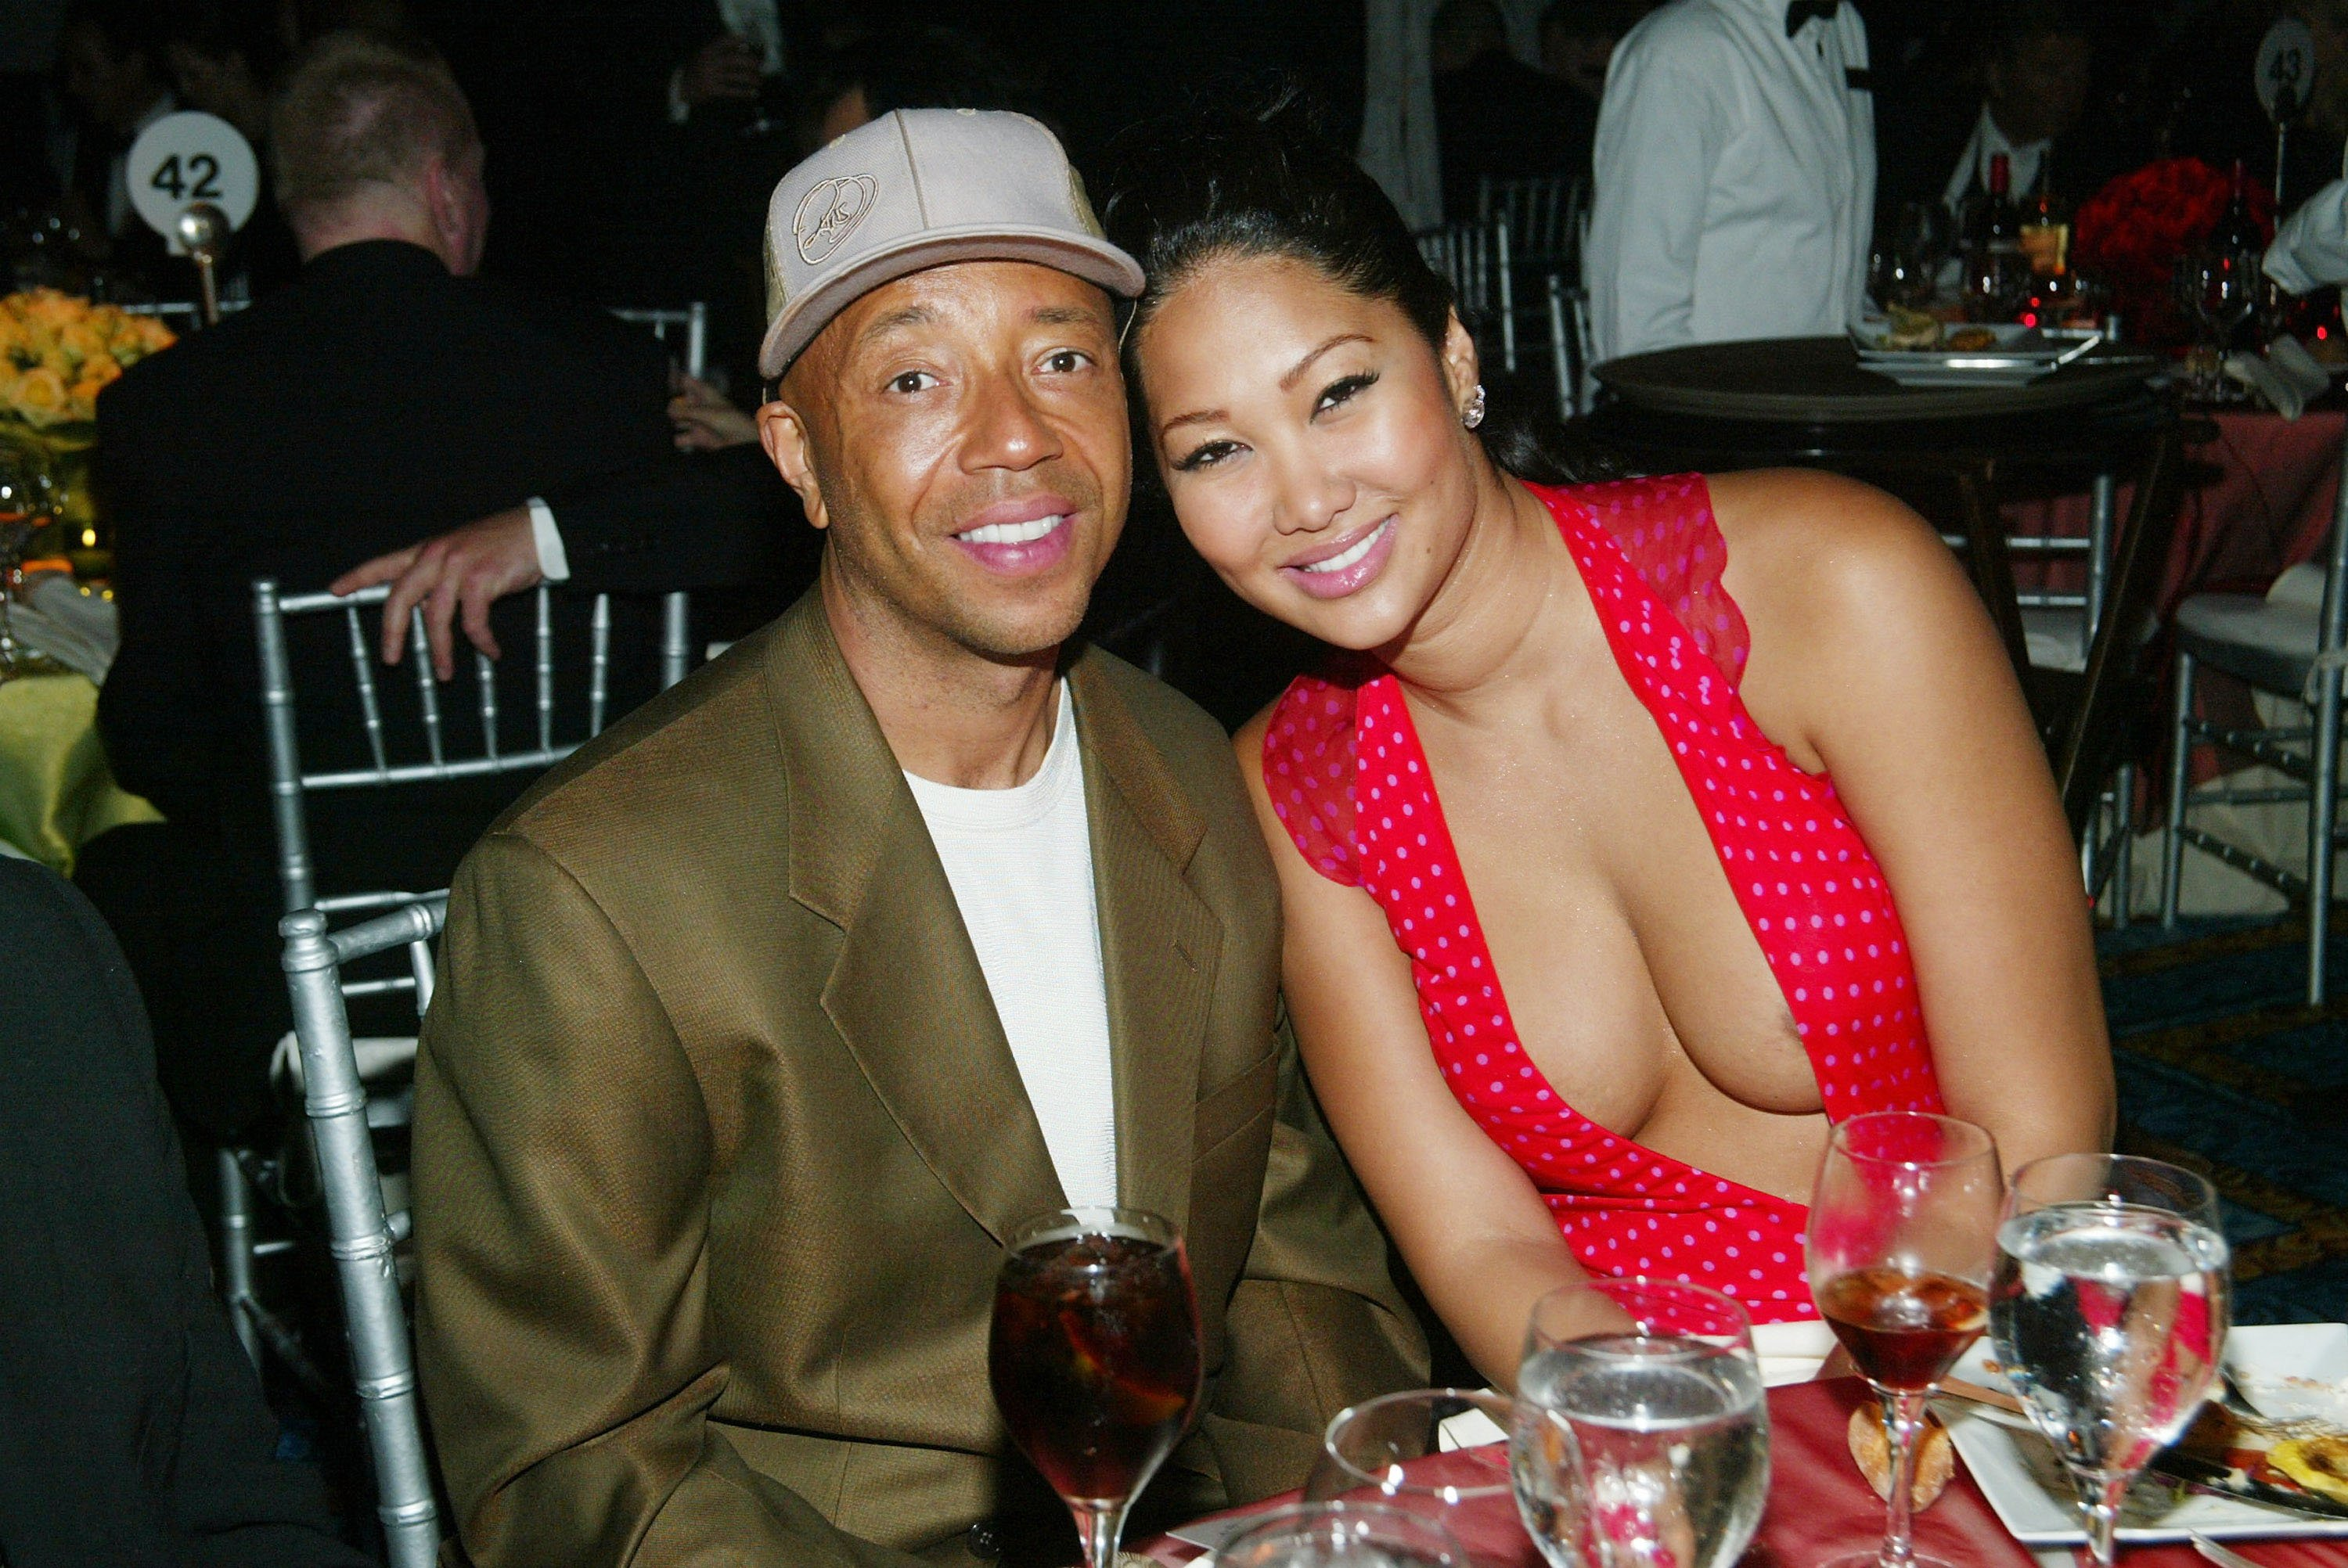 Kimora Lee Simmons at the Tony Awards Dinner with ex husband, Russel Simmons on June 8, 2003. | Photo: Getty Images.